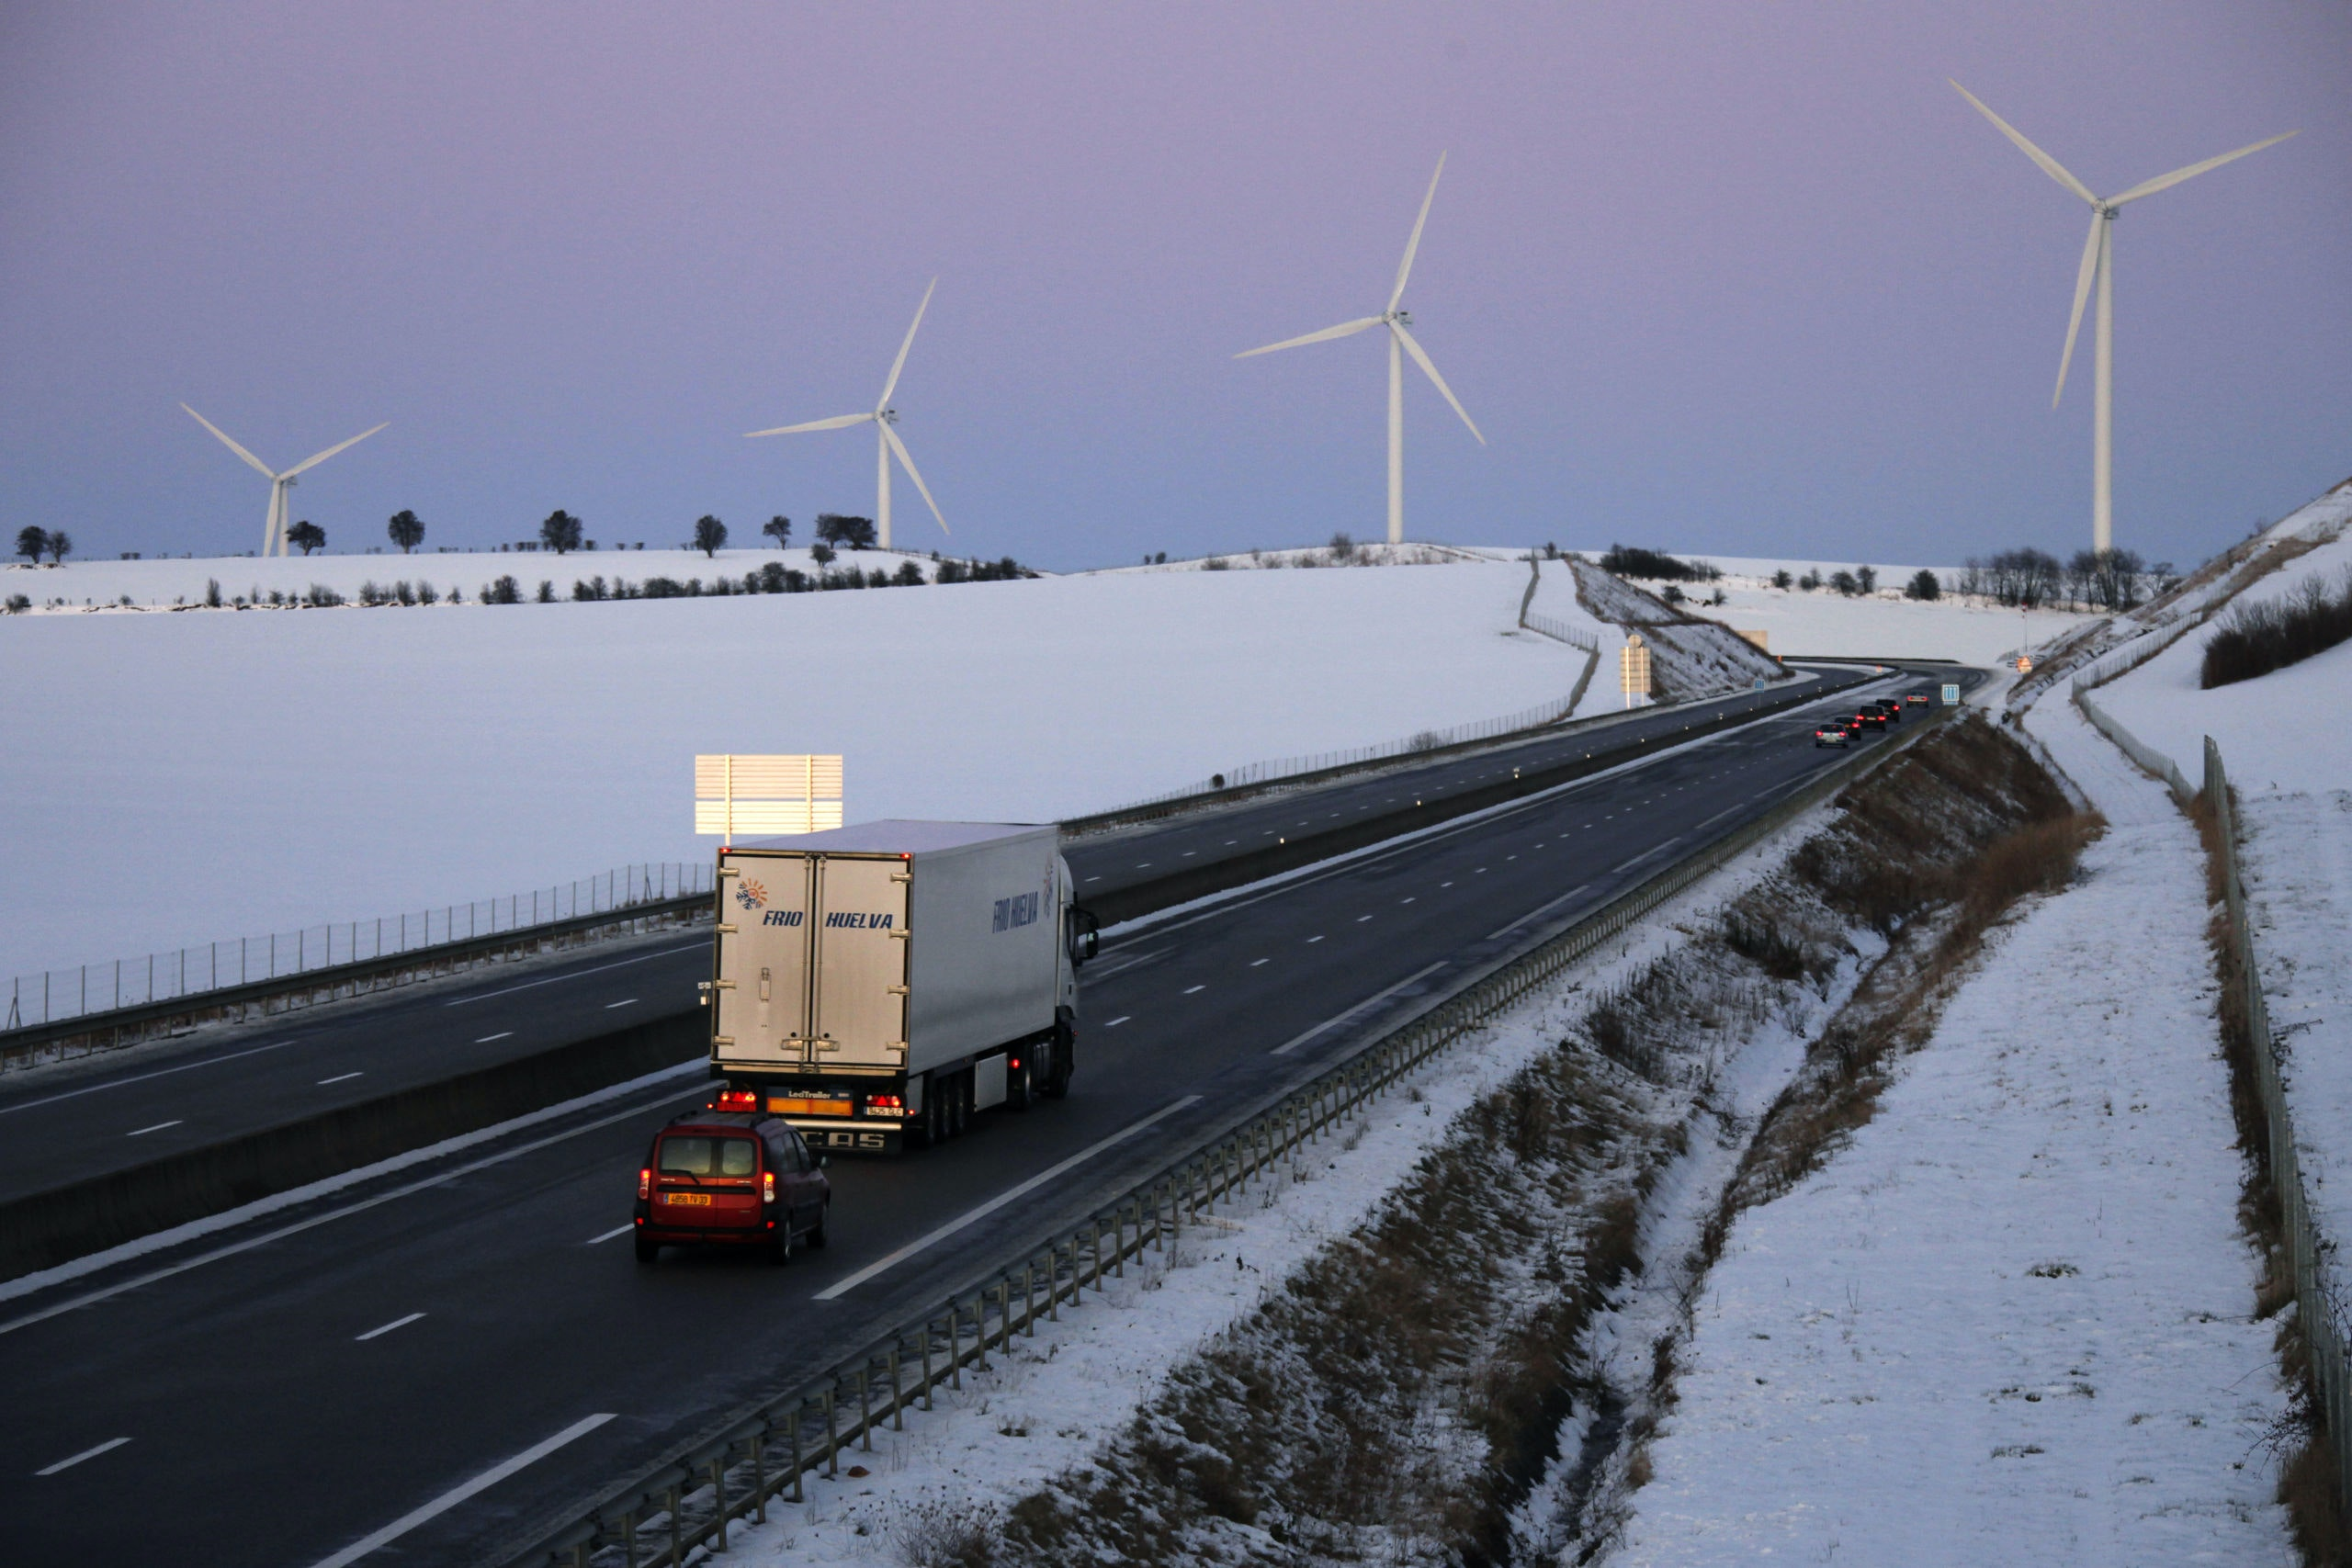 Vehicles run on A23 motorway near Aumale between Amiens and Rouen, after heavy snowfall in northern France, December 20, 2009. Heavy snowfall has disrupted traffic for three days in many parts of the country. REUTERS/Pascal Rossignol (FRANCE - Tags: ENVIRONMENT) - GM1E5CL0A0J01